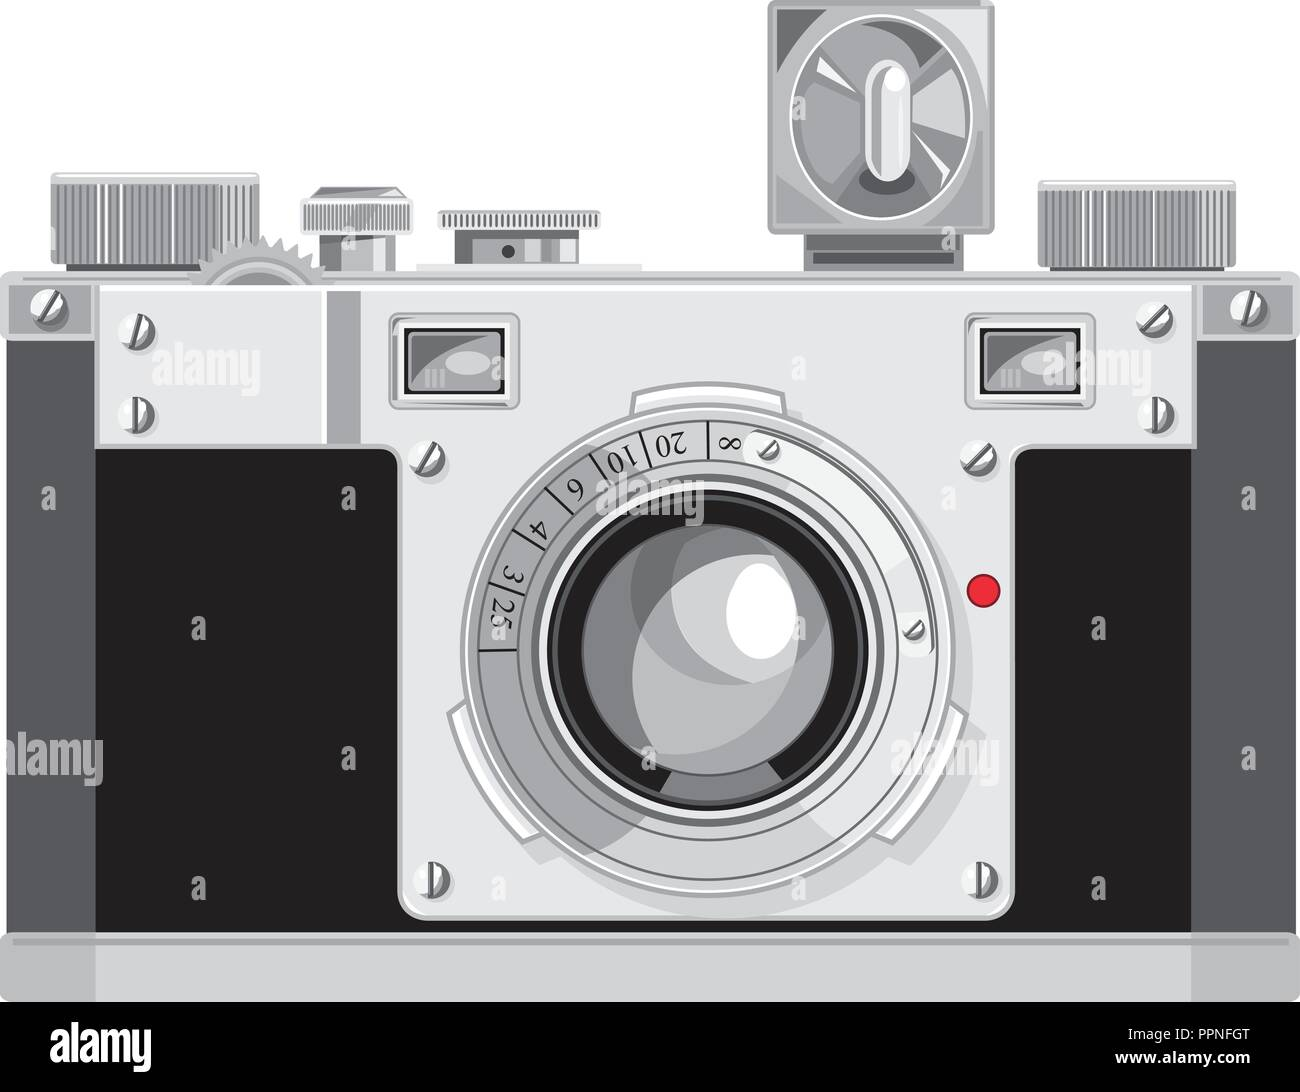 Retro style illustration of a vintage 35mm film camera with a cube flash viewed from front on isolated background. - Stock Vector